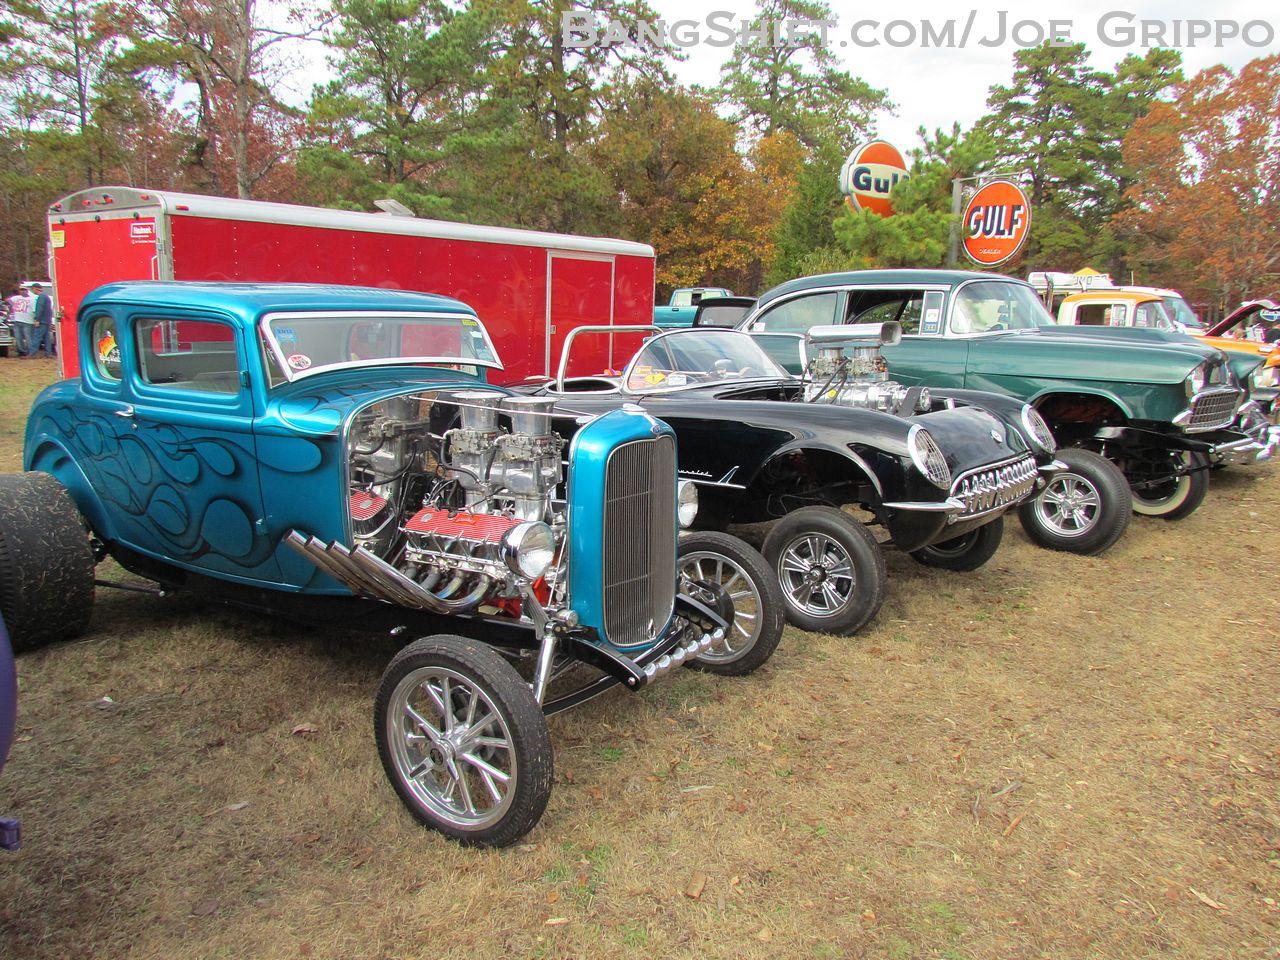 Gallery: Fleming's Pumpkin Run 2013 – The Cool Cars, Trucks, and Machines Keep Coming!